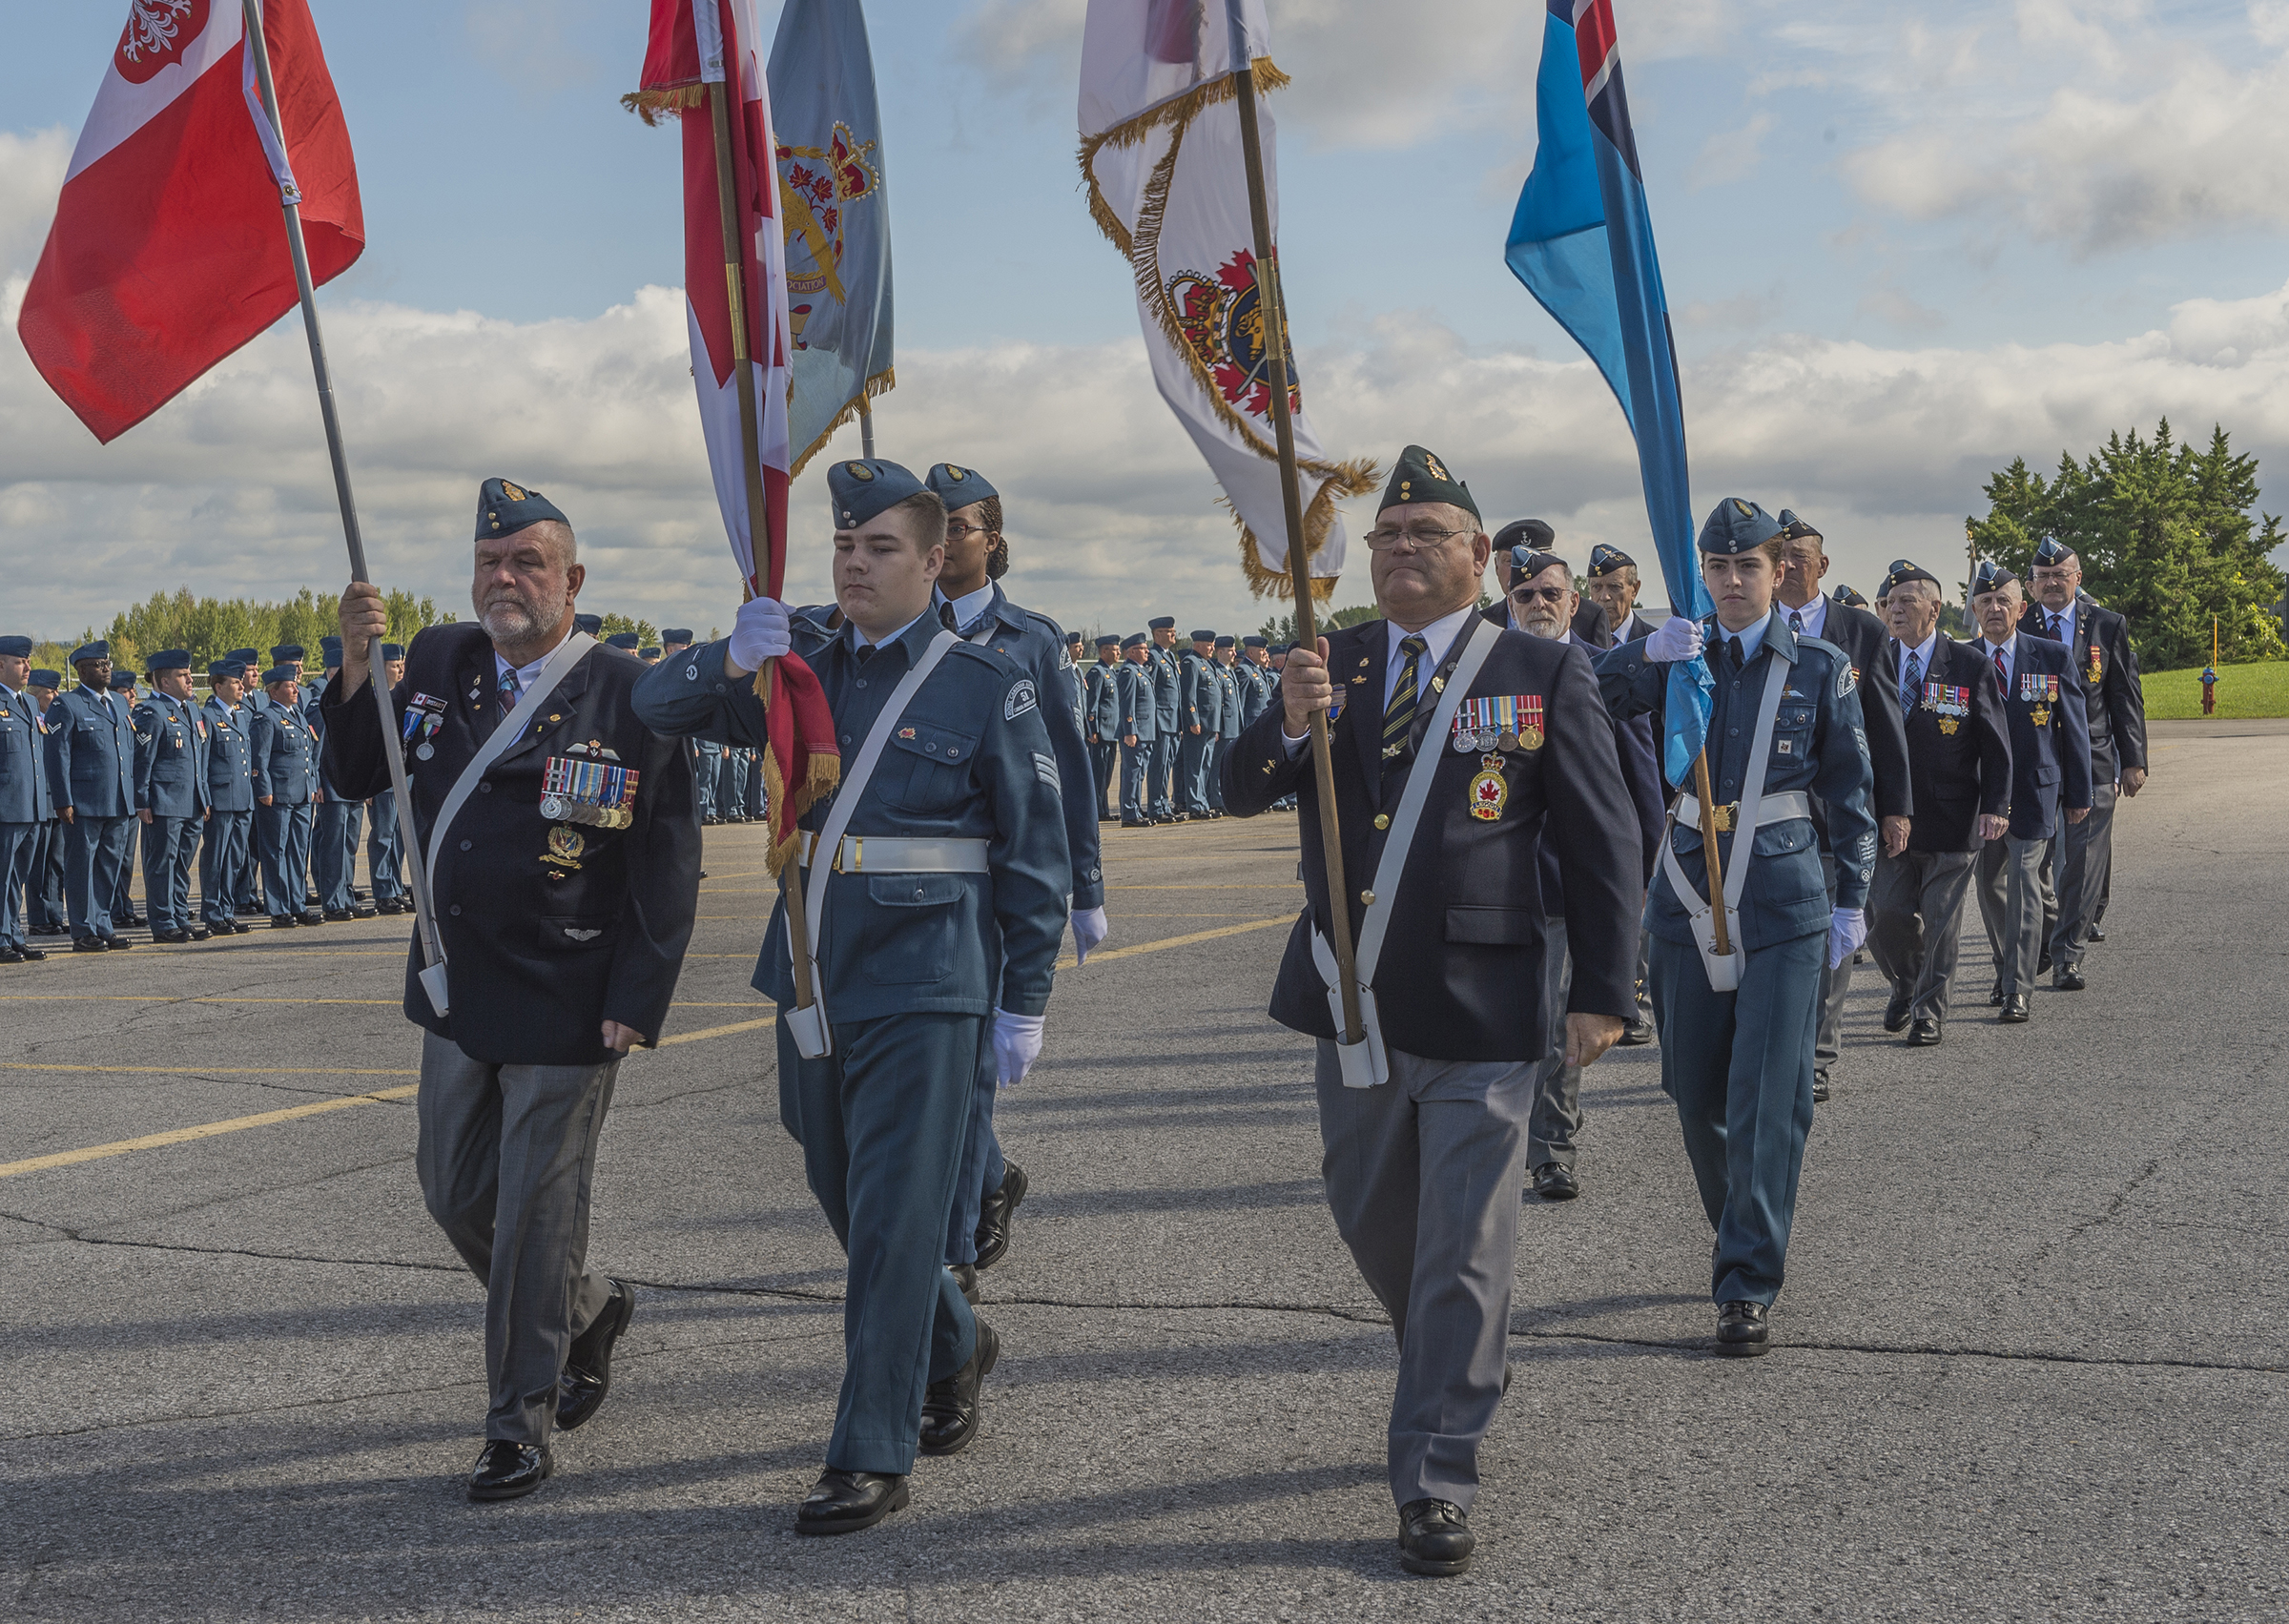 Members of 410 (William Barker, VC) Wing of the RCAF Association and members of the 872 Kiwanis Kanata Squadron of the Royal Canadian Air Cadets lead the veterans' contingent onto the parade square during the 2016 national Battle of Britain ceremony at the Canada Aviation and Space Museum in Ottawa on September 18. PHOTO: Corporal Alana Morin, FA03-2016-0032-011